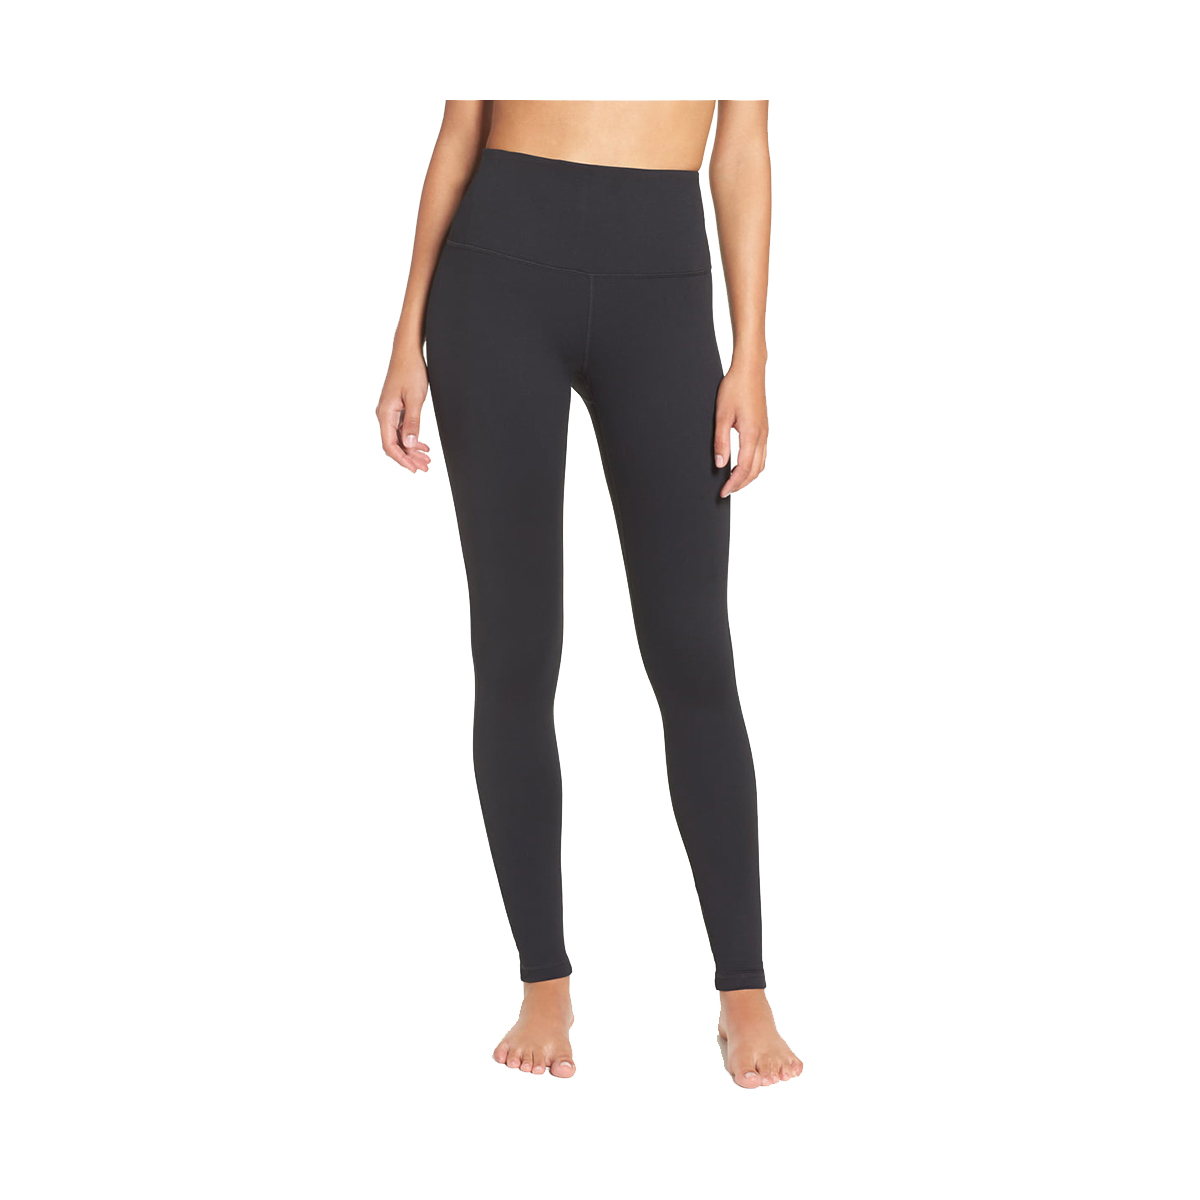 b0ff6526dd37b 11 Top-Rated Black Leggings That Are So Comfortable, You'll Never ...